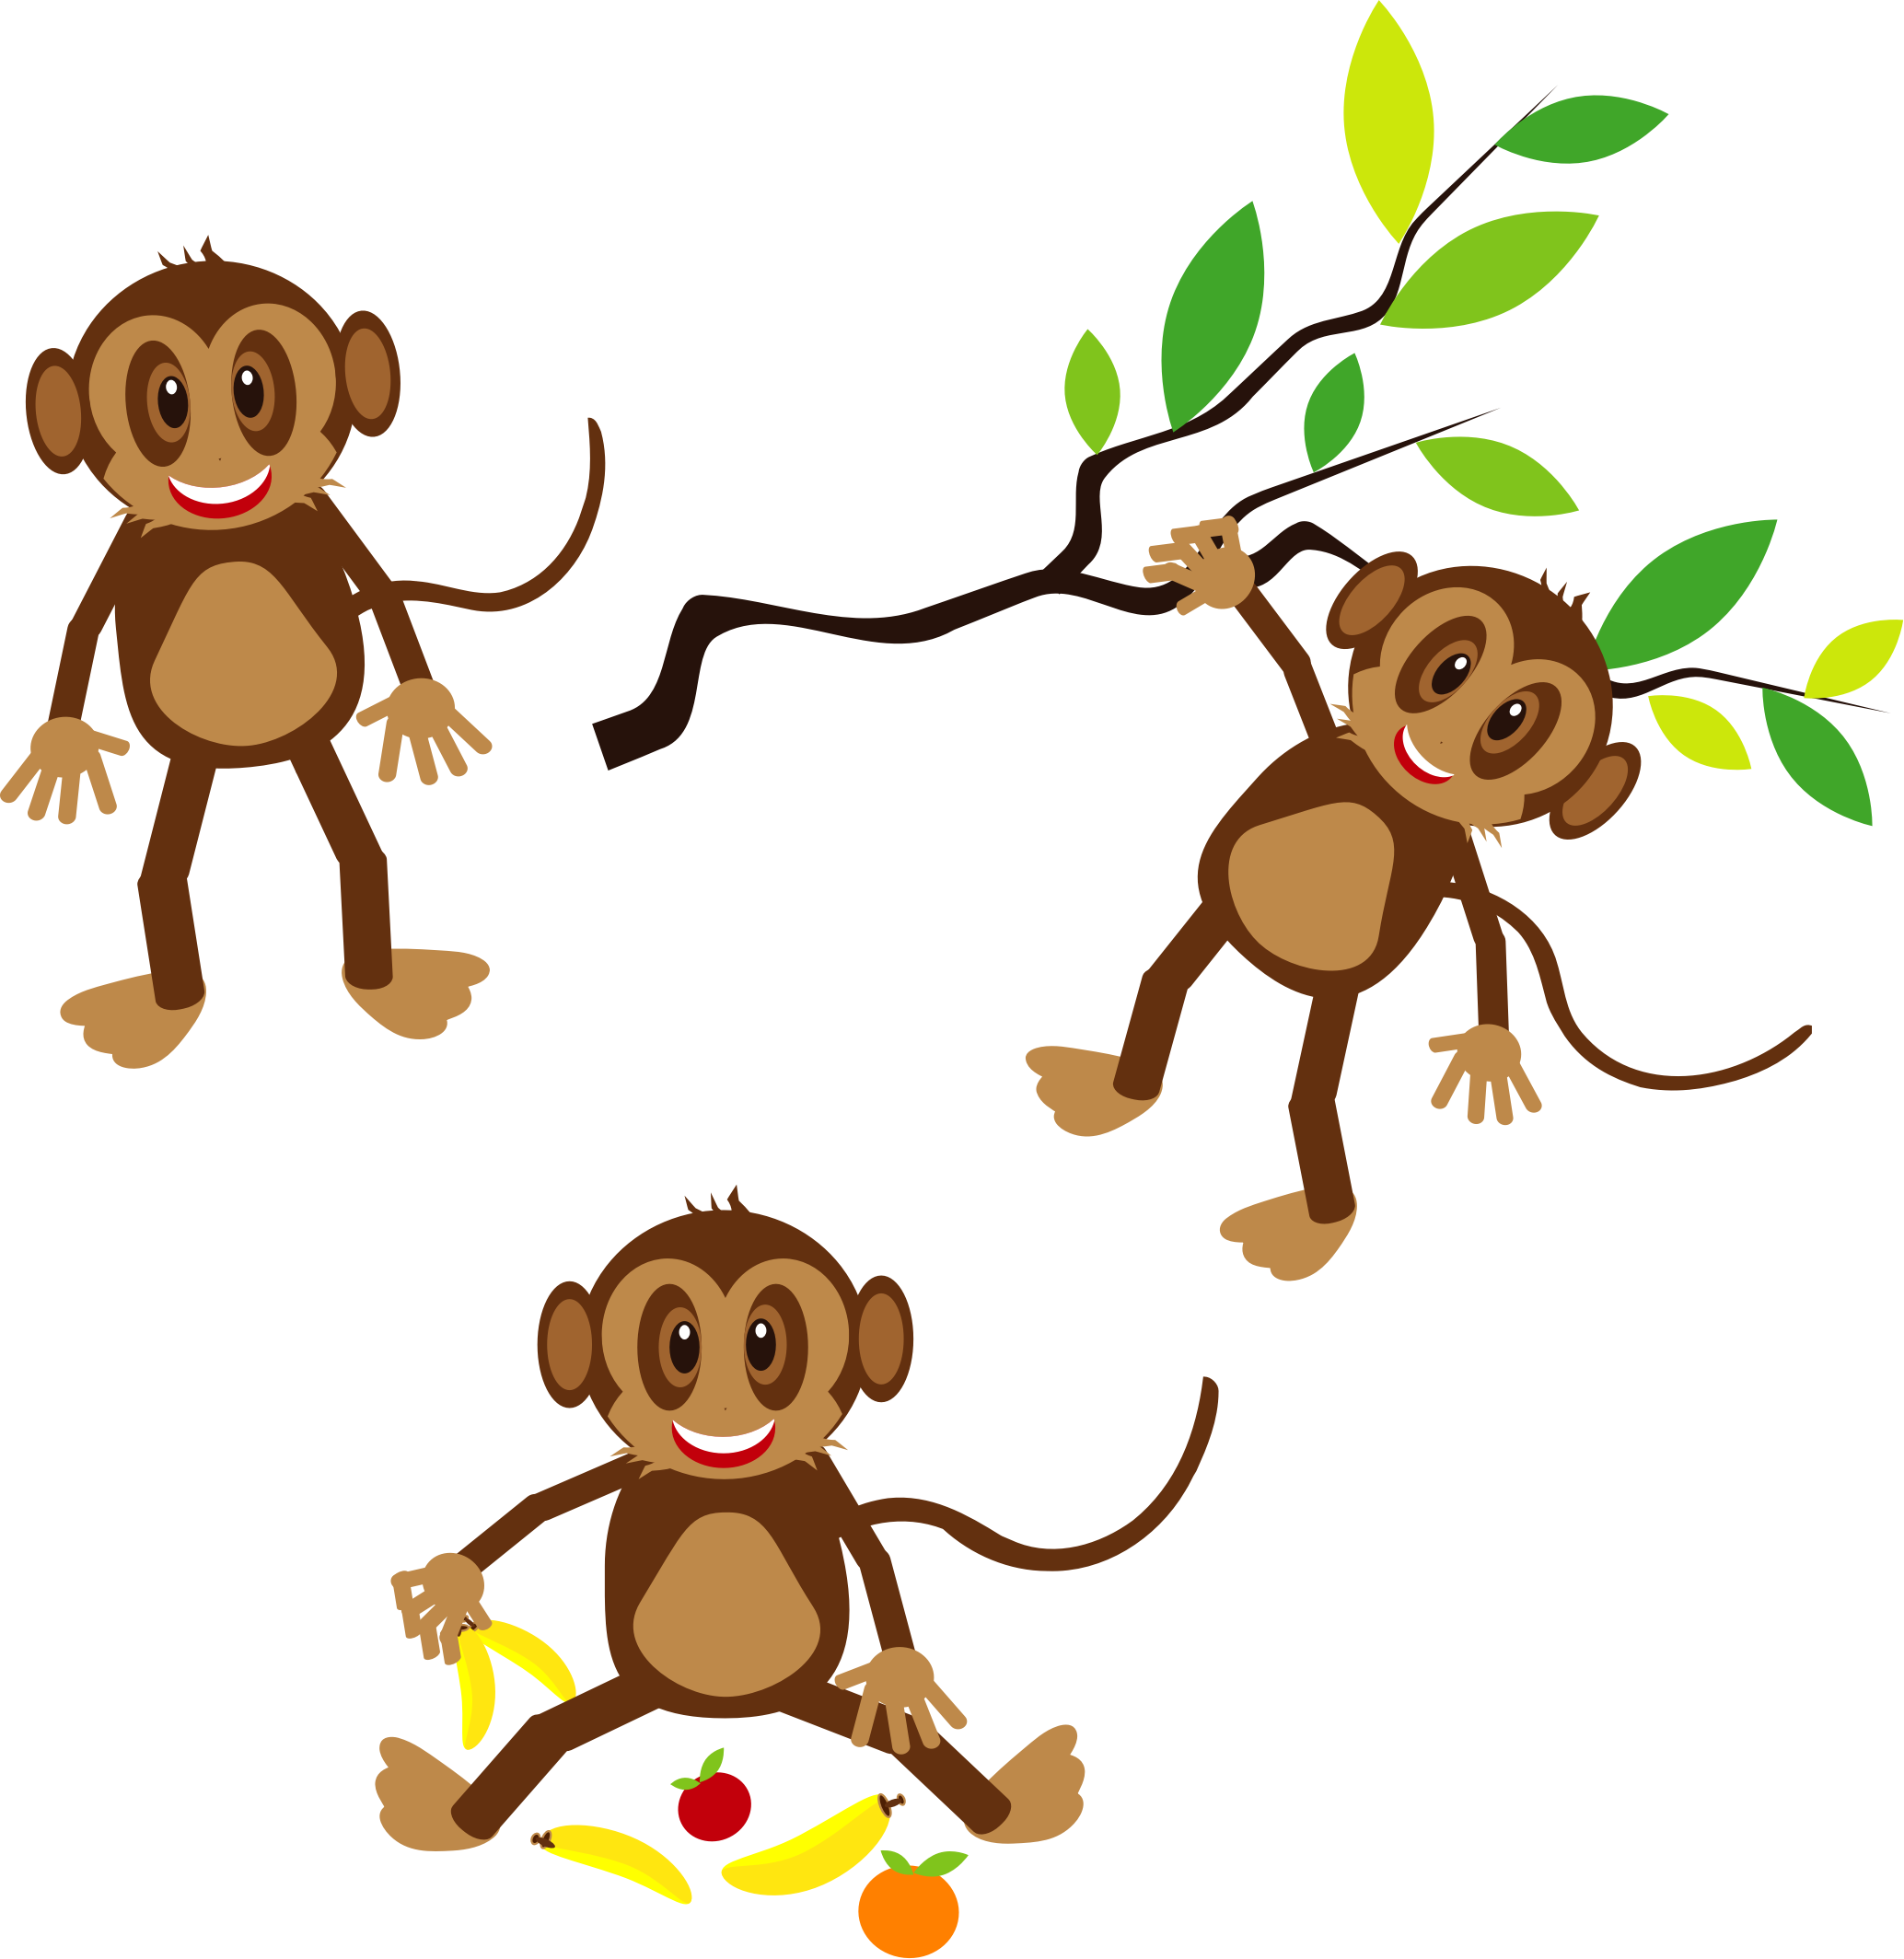 jpg free Monkey silhouette clip art. Monkeys clipart